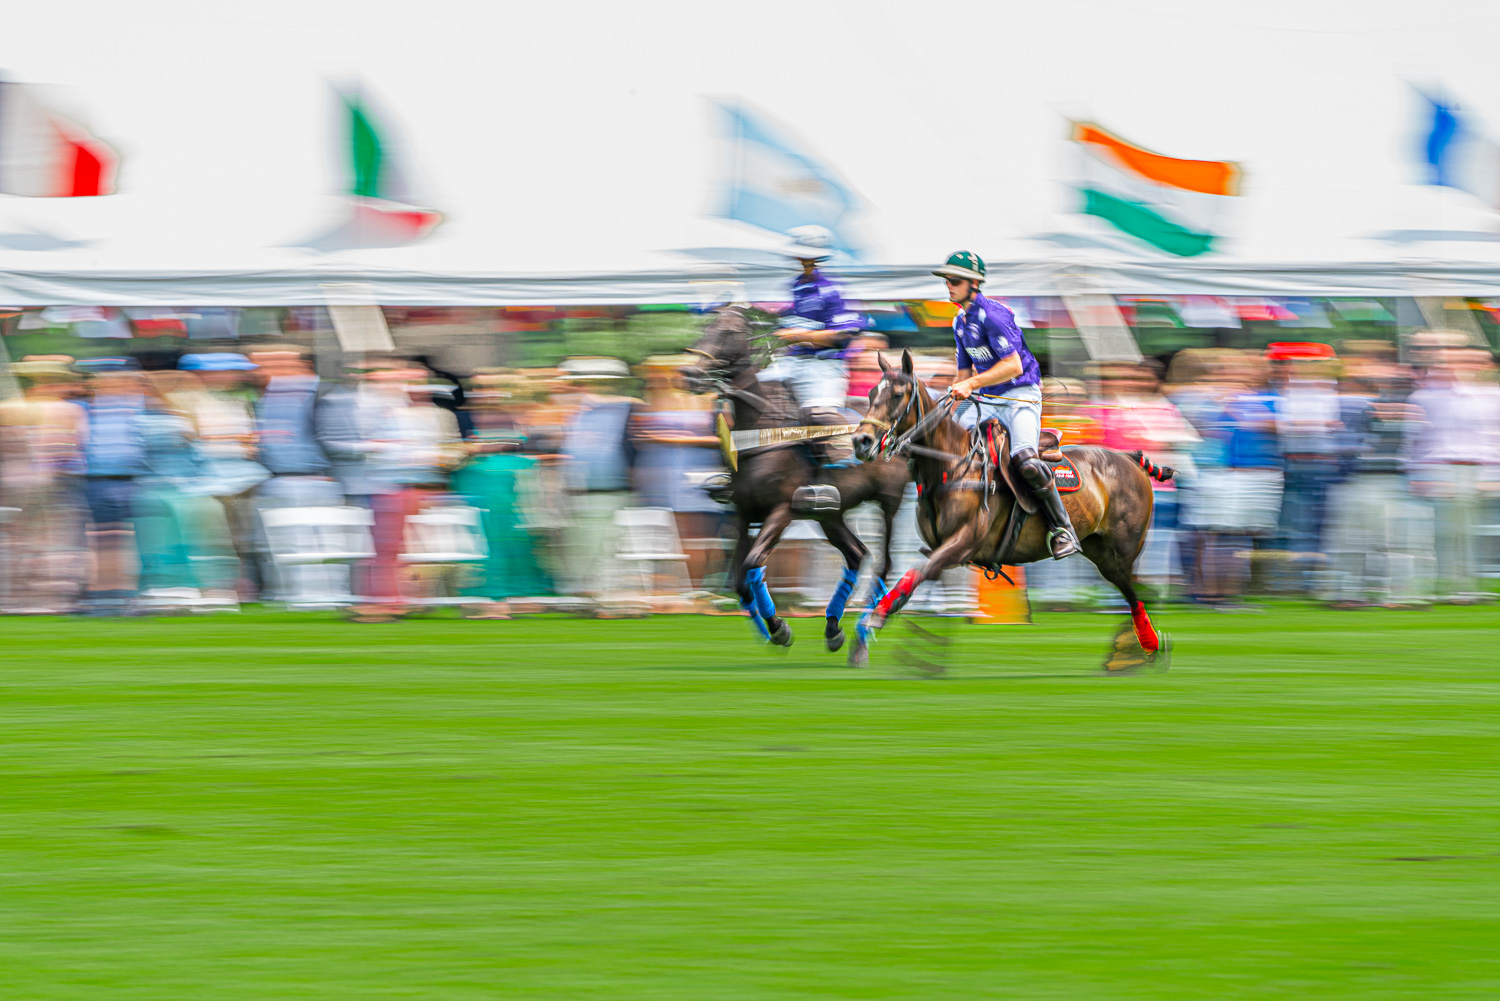 polo players battle it out in front of the grand stands at the mashomack polo club in pine plains, ny.  The action blur creats a sense of speed and movem.jpg